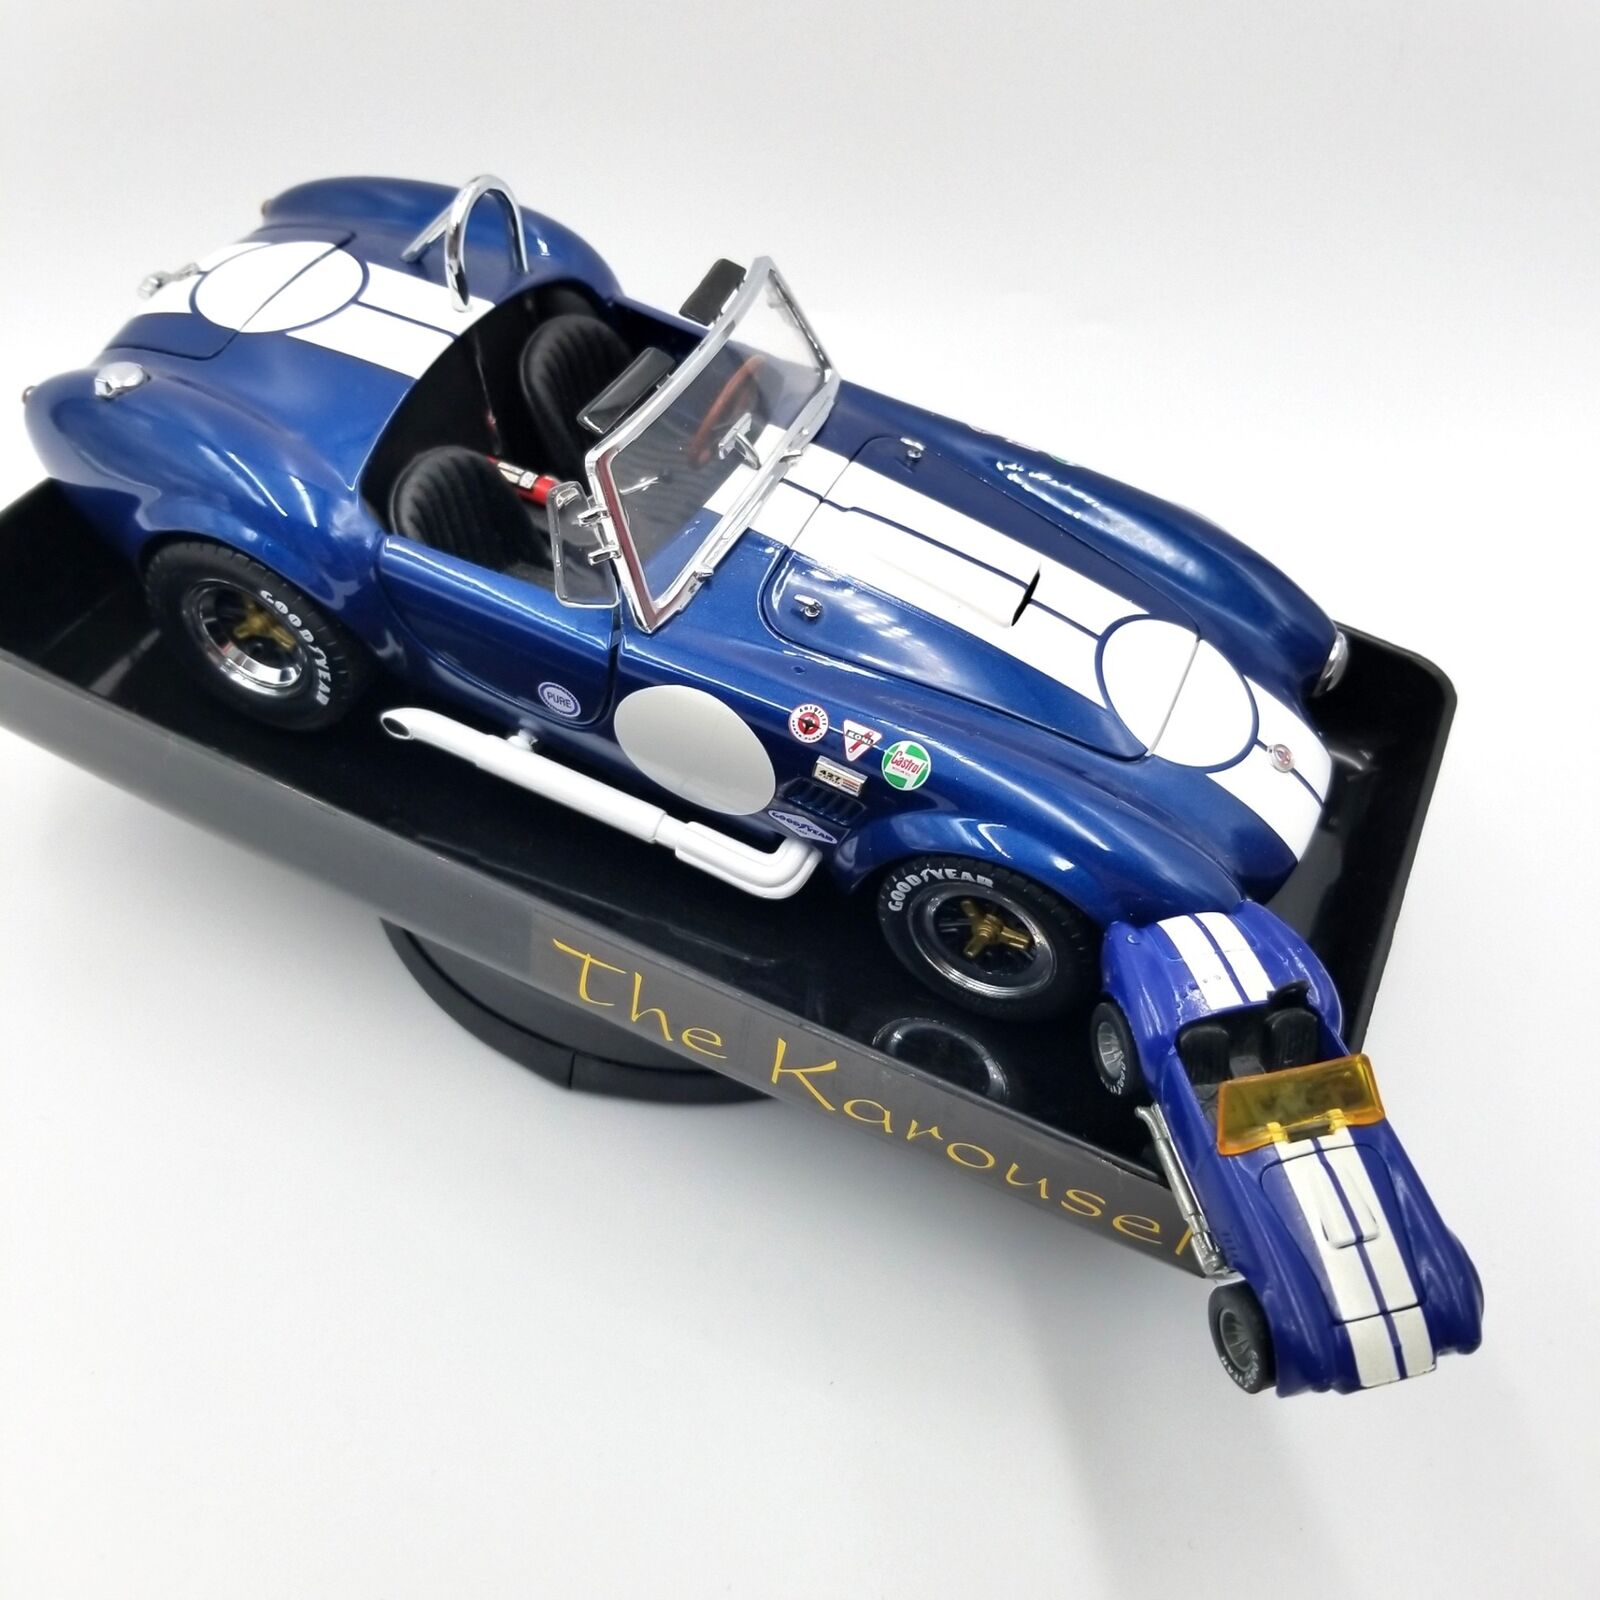 Kyosho Shelby Cobra 427 bleu 1 18 KAROUSEL voiture plateau tournant HOT WHEELS 1 64 Lot 3